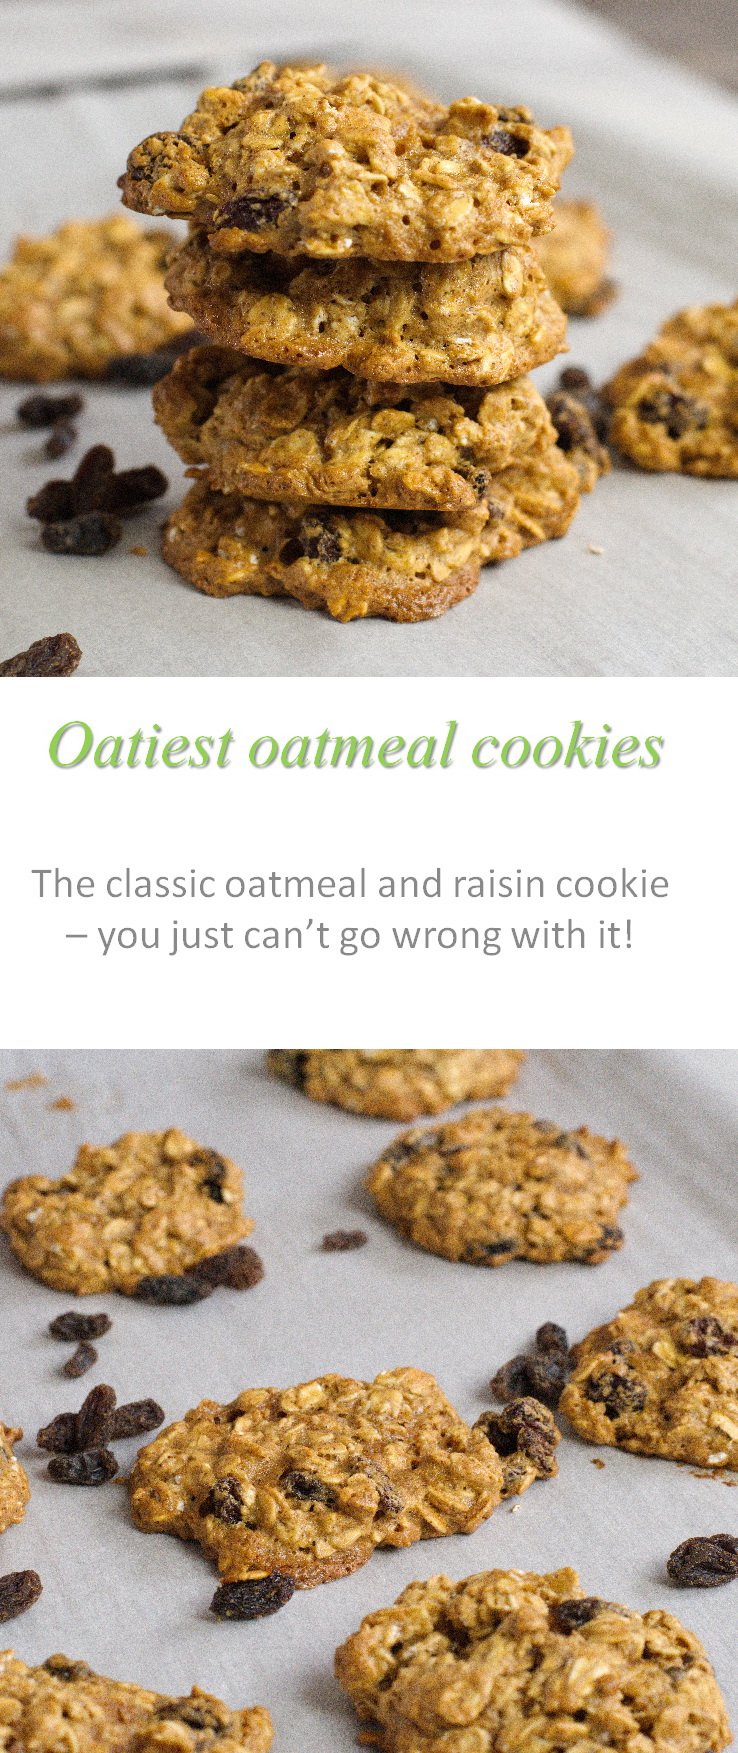 These oatiest oatmeal cookies are full of raisins and so yummy - can't go wrong with the classic combo of oatmeal raisin cookies! #oatmeal